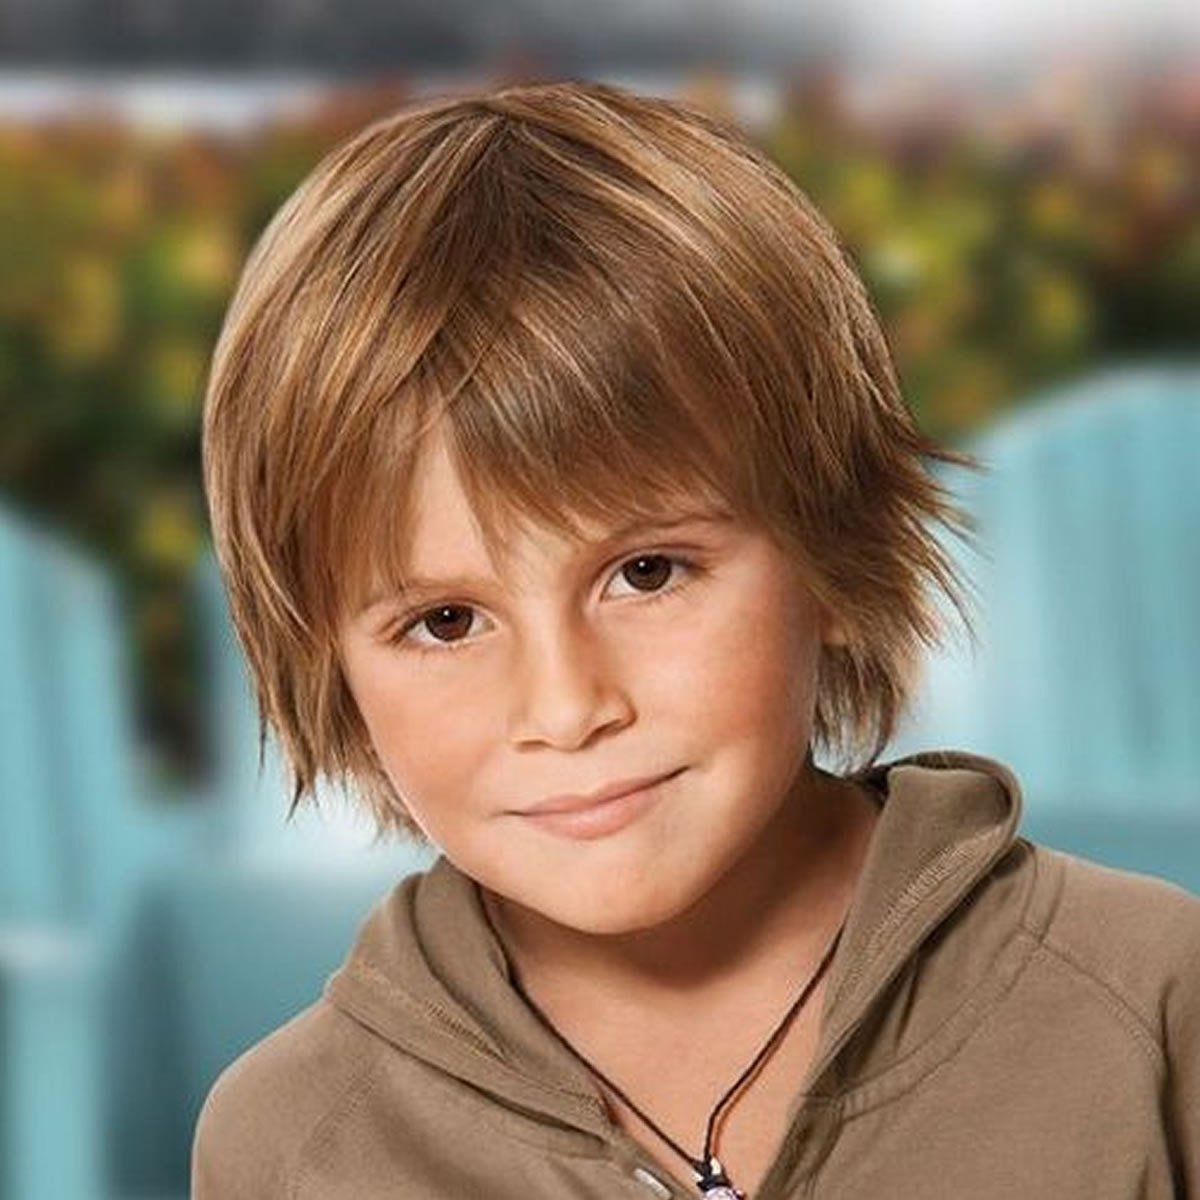 The Best Haircuts For Little Boys 2018 2019 – Hairstyles Pictures